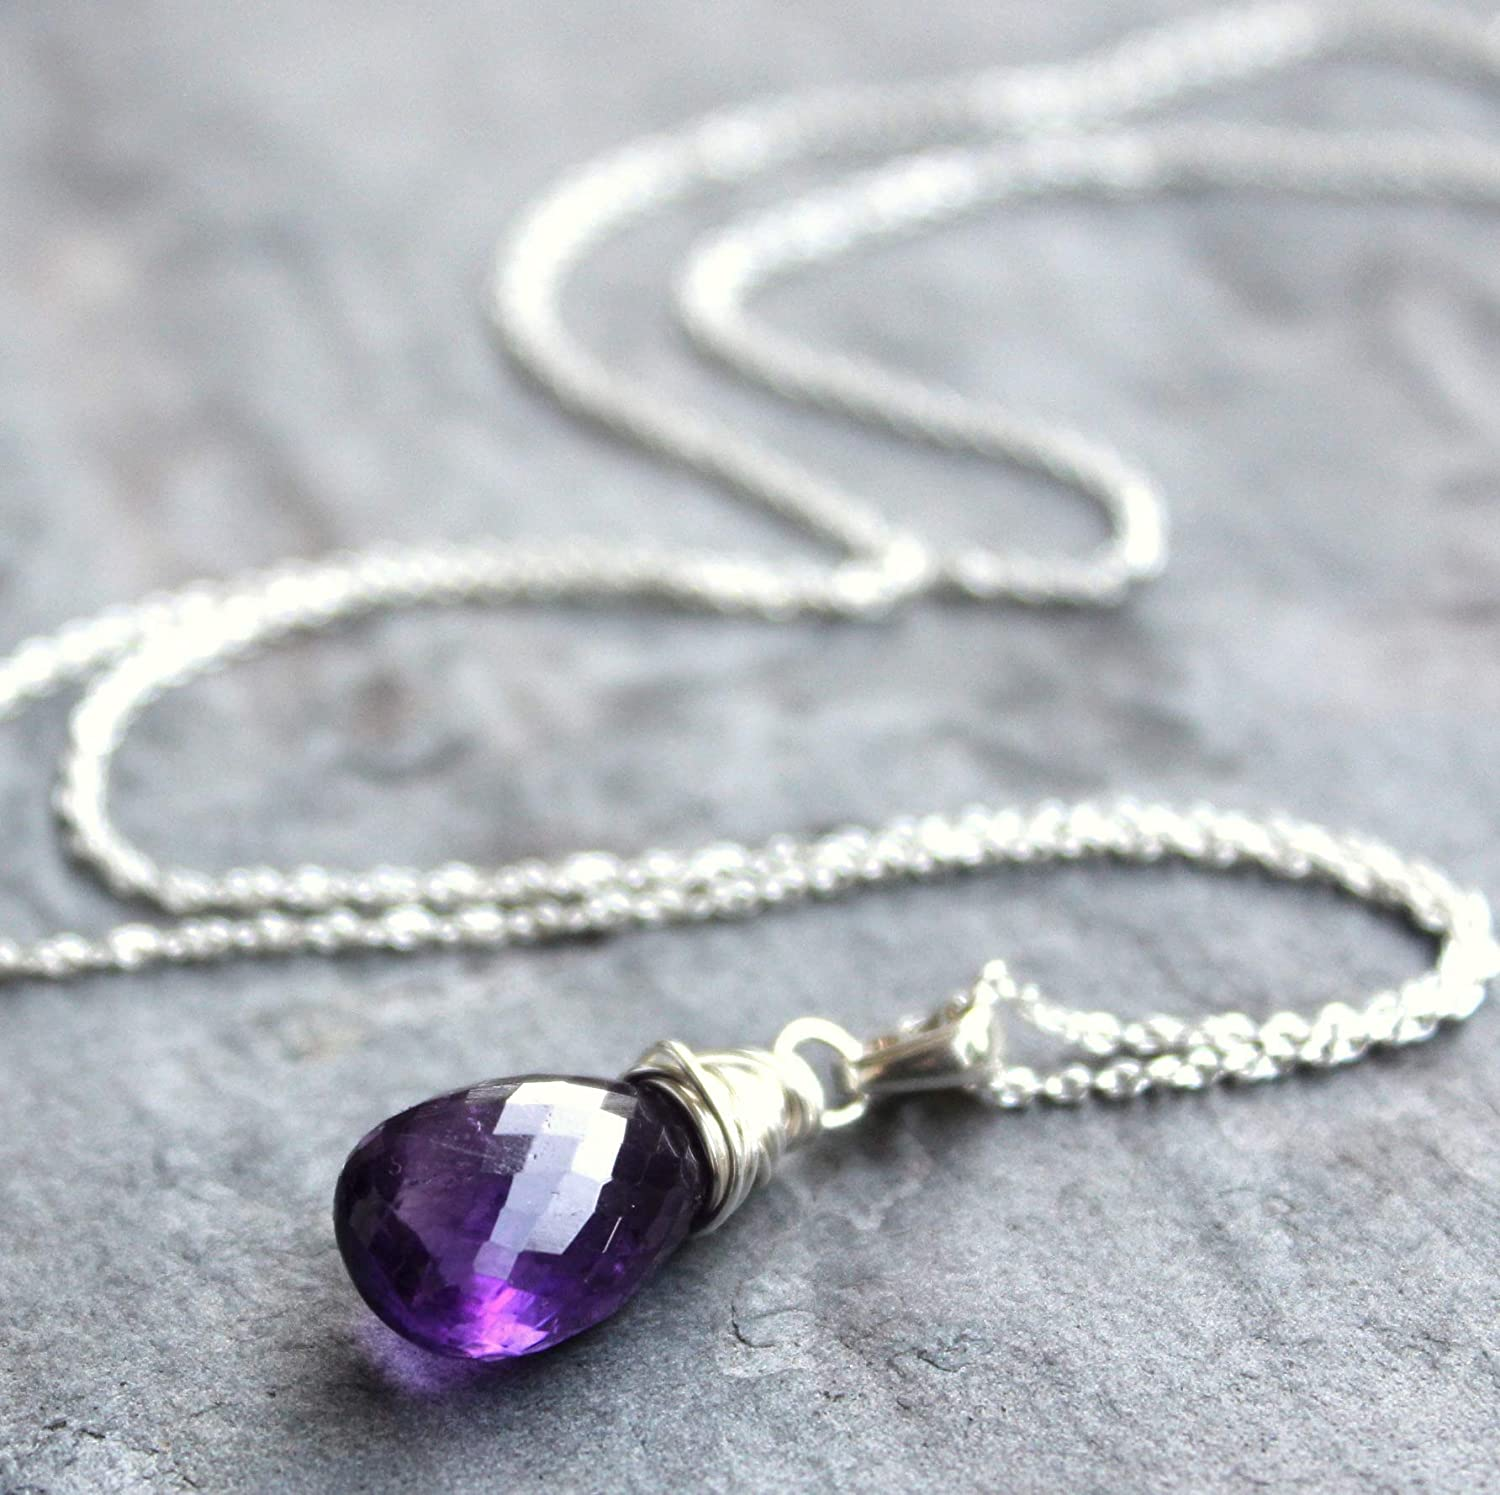 AMETHYST  GEMSTONE  PENDANT NECKLACE  WIRE WRAPPED STERLING SILVER